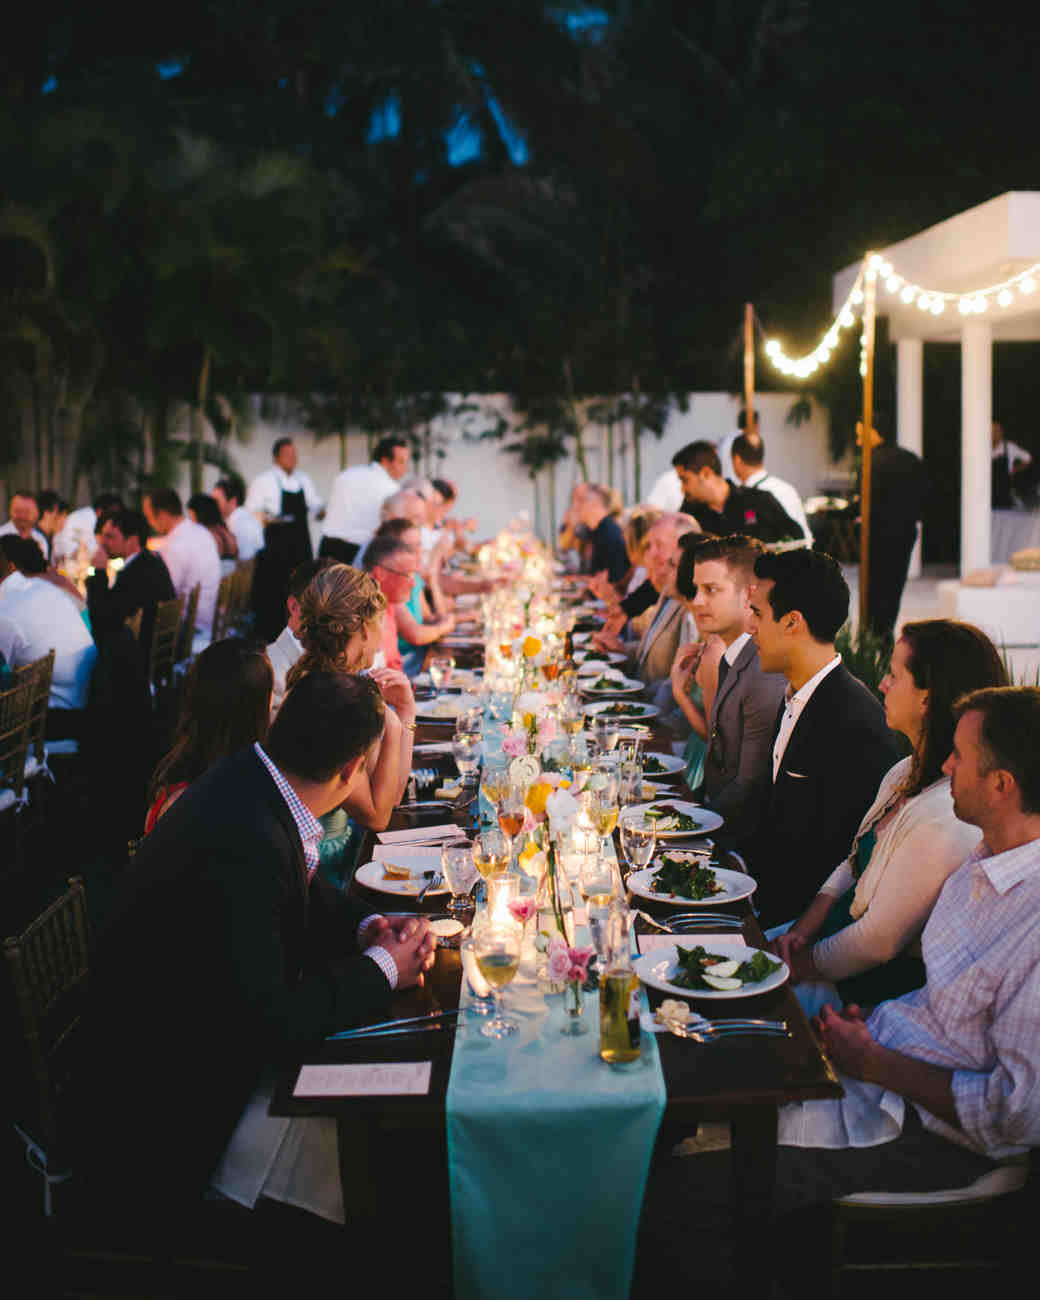 Wedding Reception Dinners  Your Wedding Reception Etiquette Questions Answered